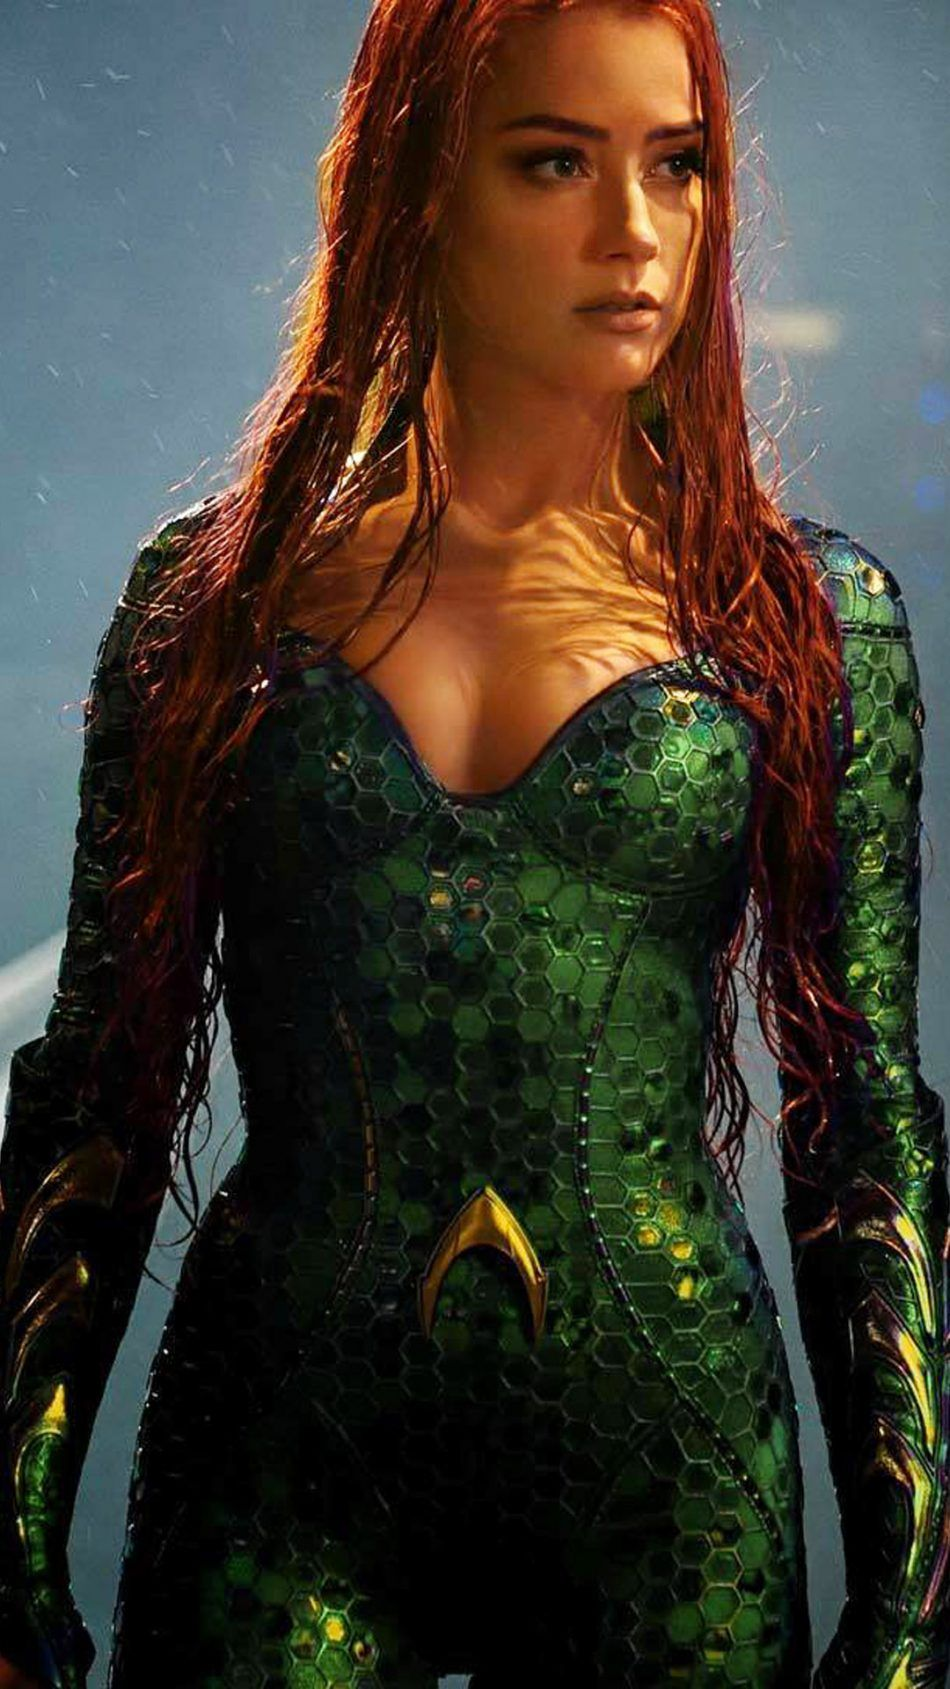 amber heard in aquaman halloween amber heard aquaman amber